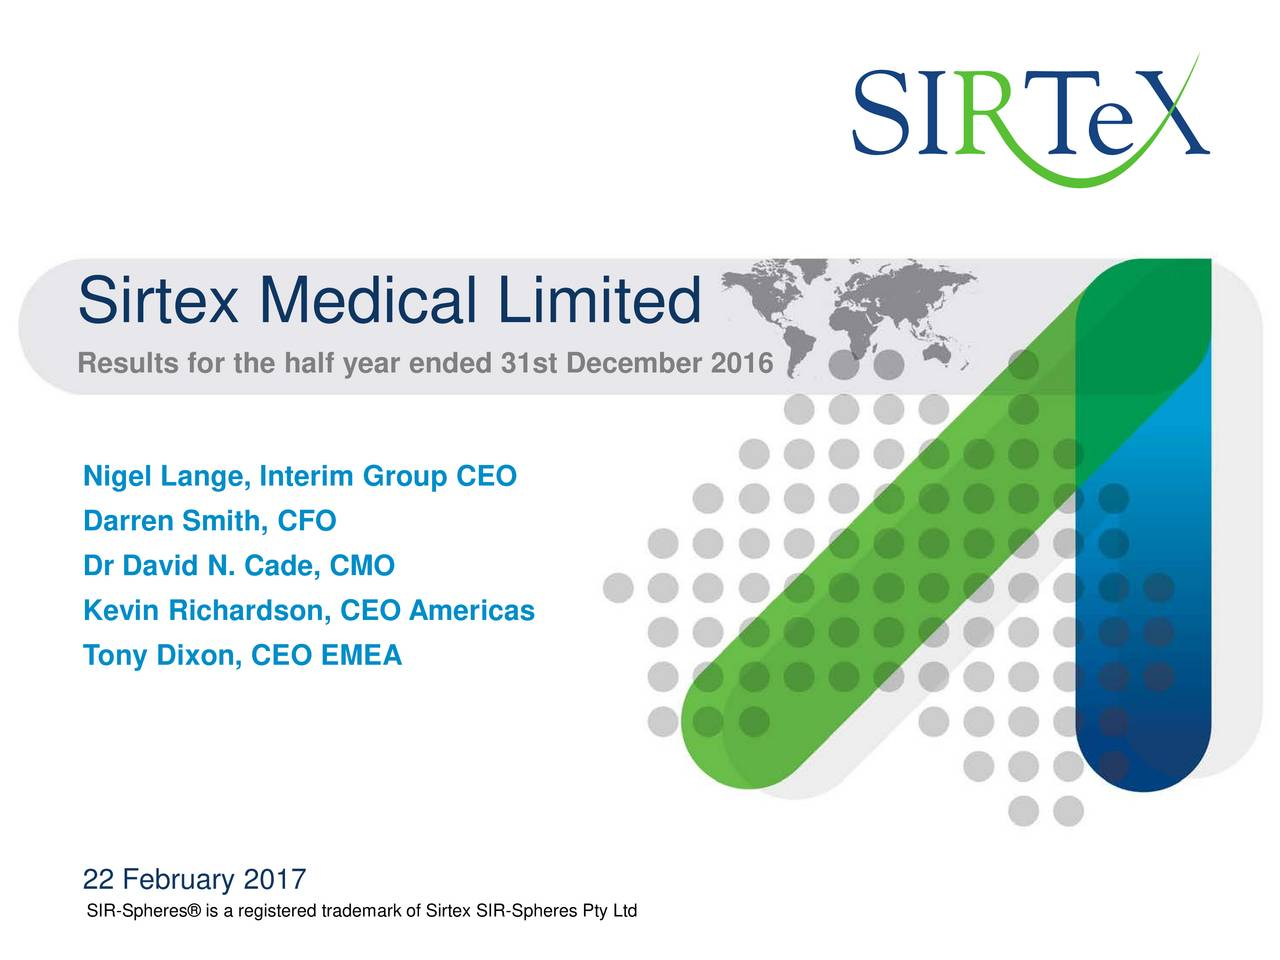 sirtex is a medical company accountancy